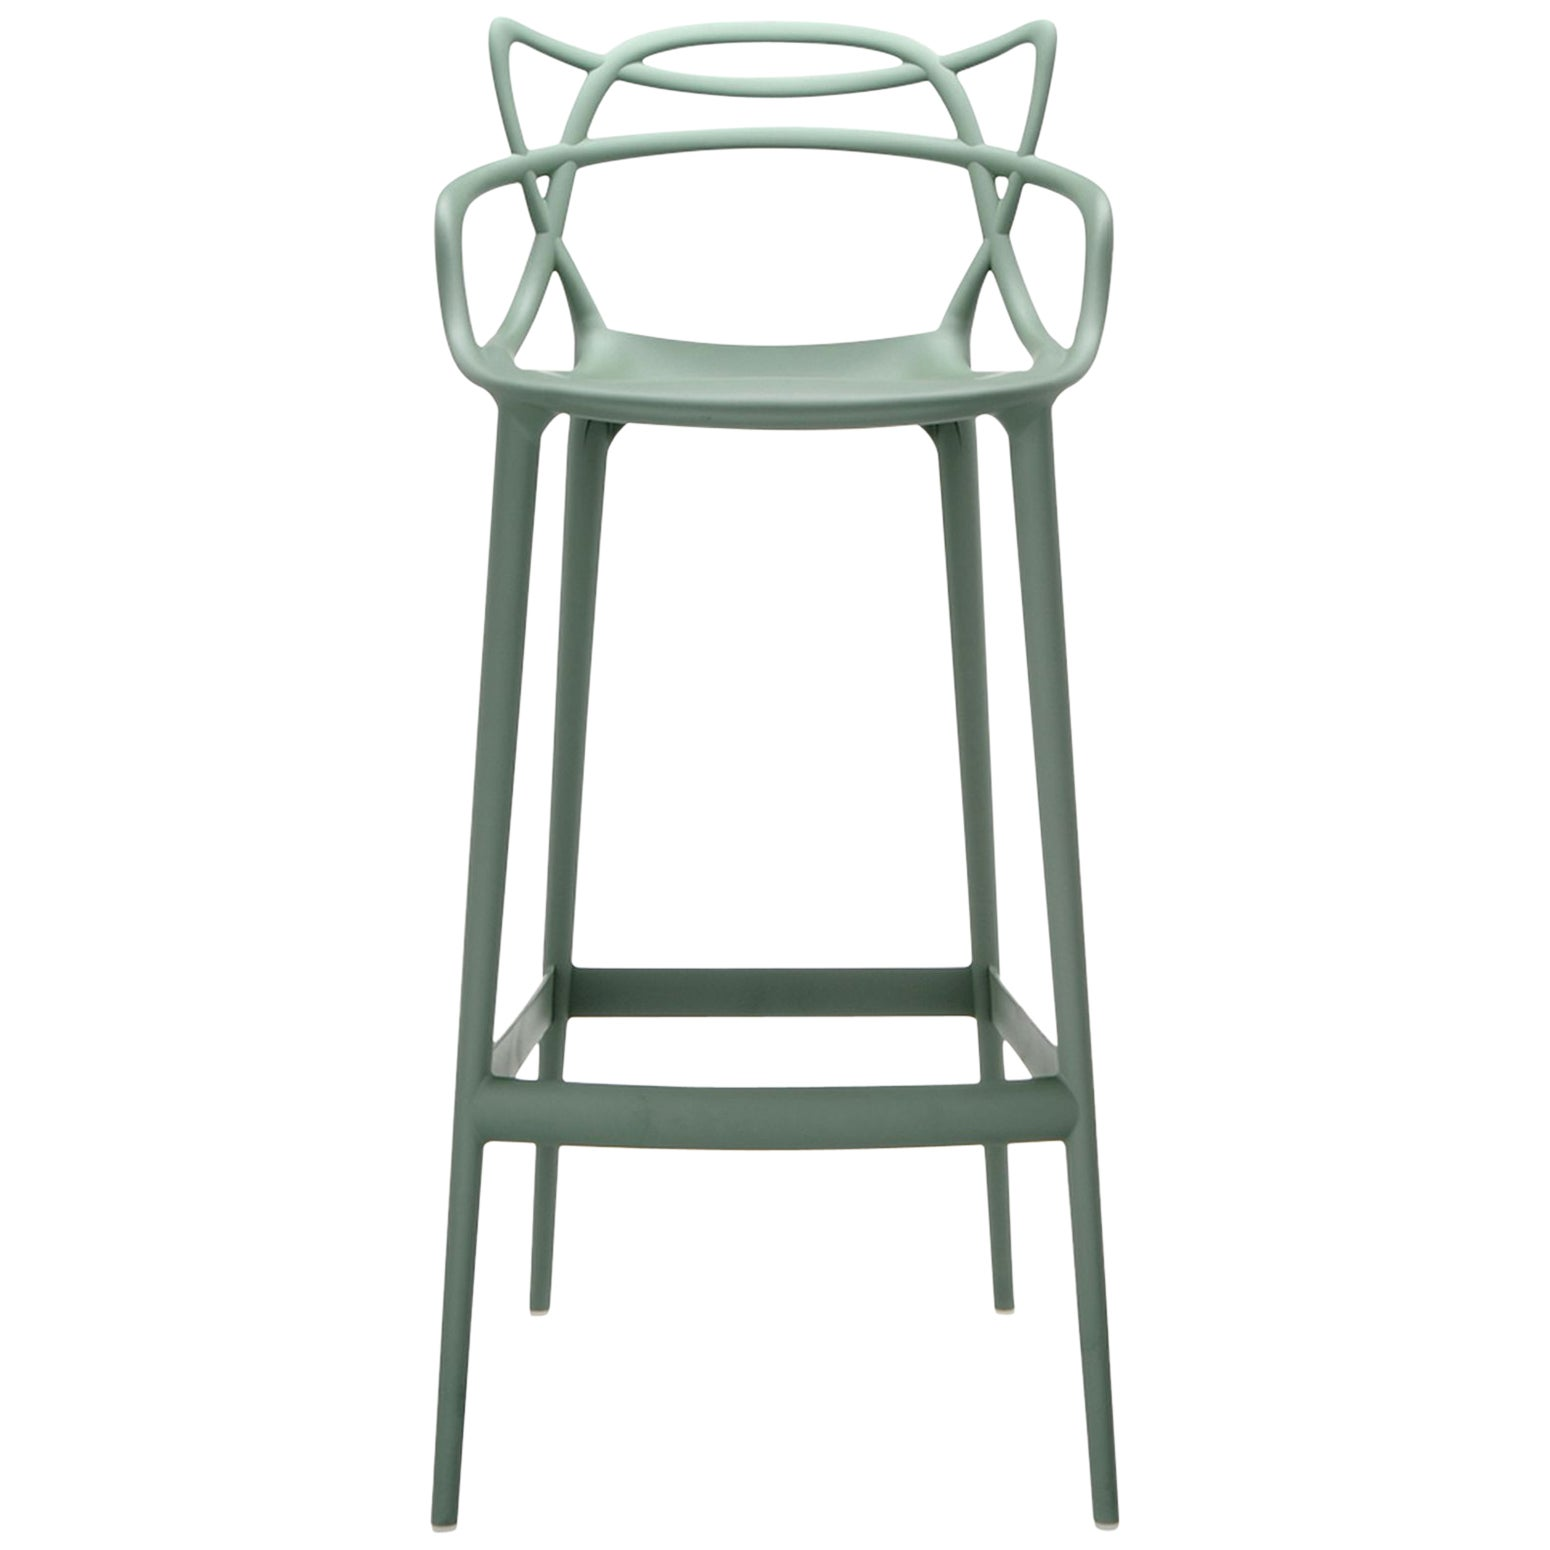 Kartell Masters Bar Stool in Sage Green by Philippe Starck & Eugeni Quitllet